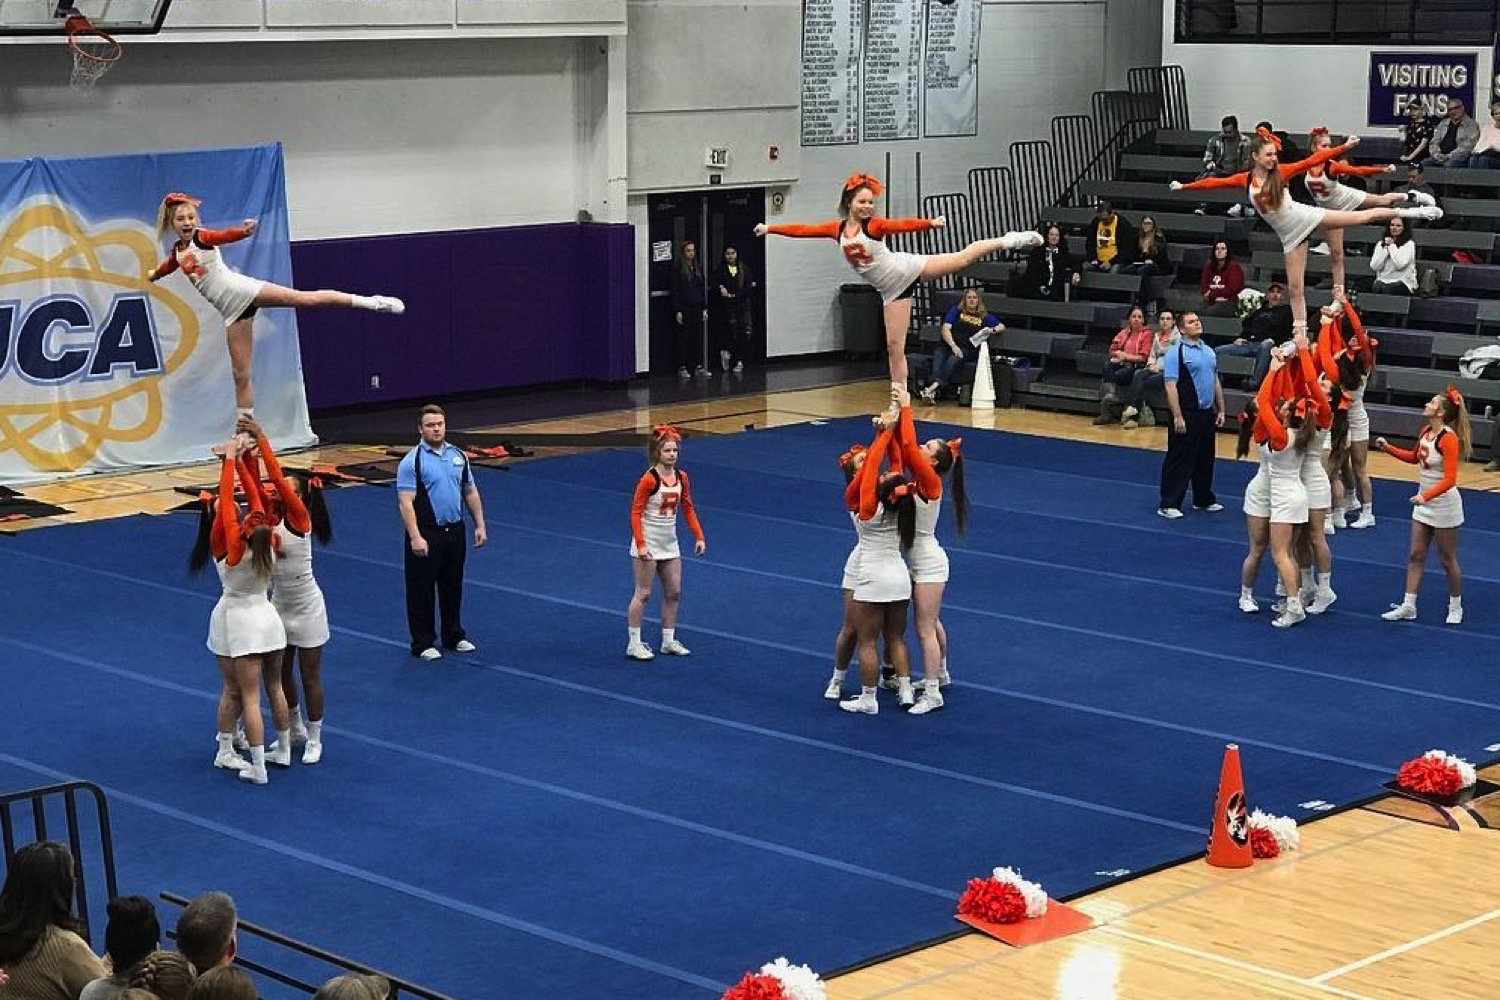 Regional Performance Fuels Cheerleaders' Prep For Nationals